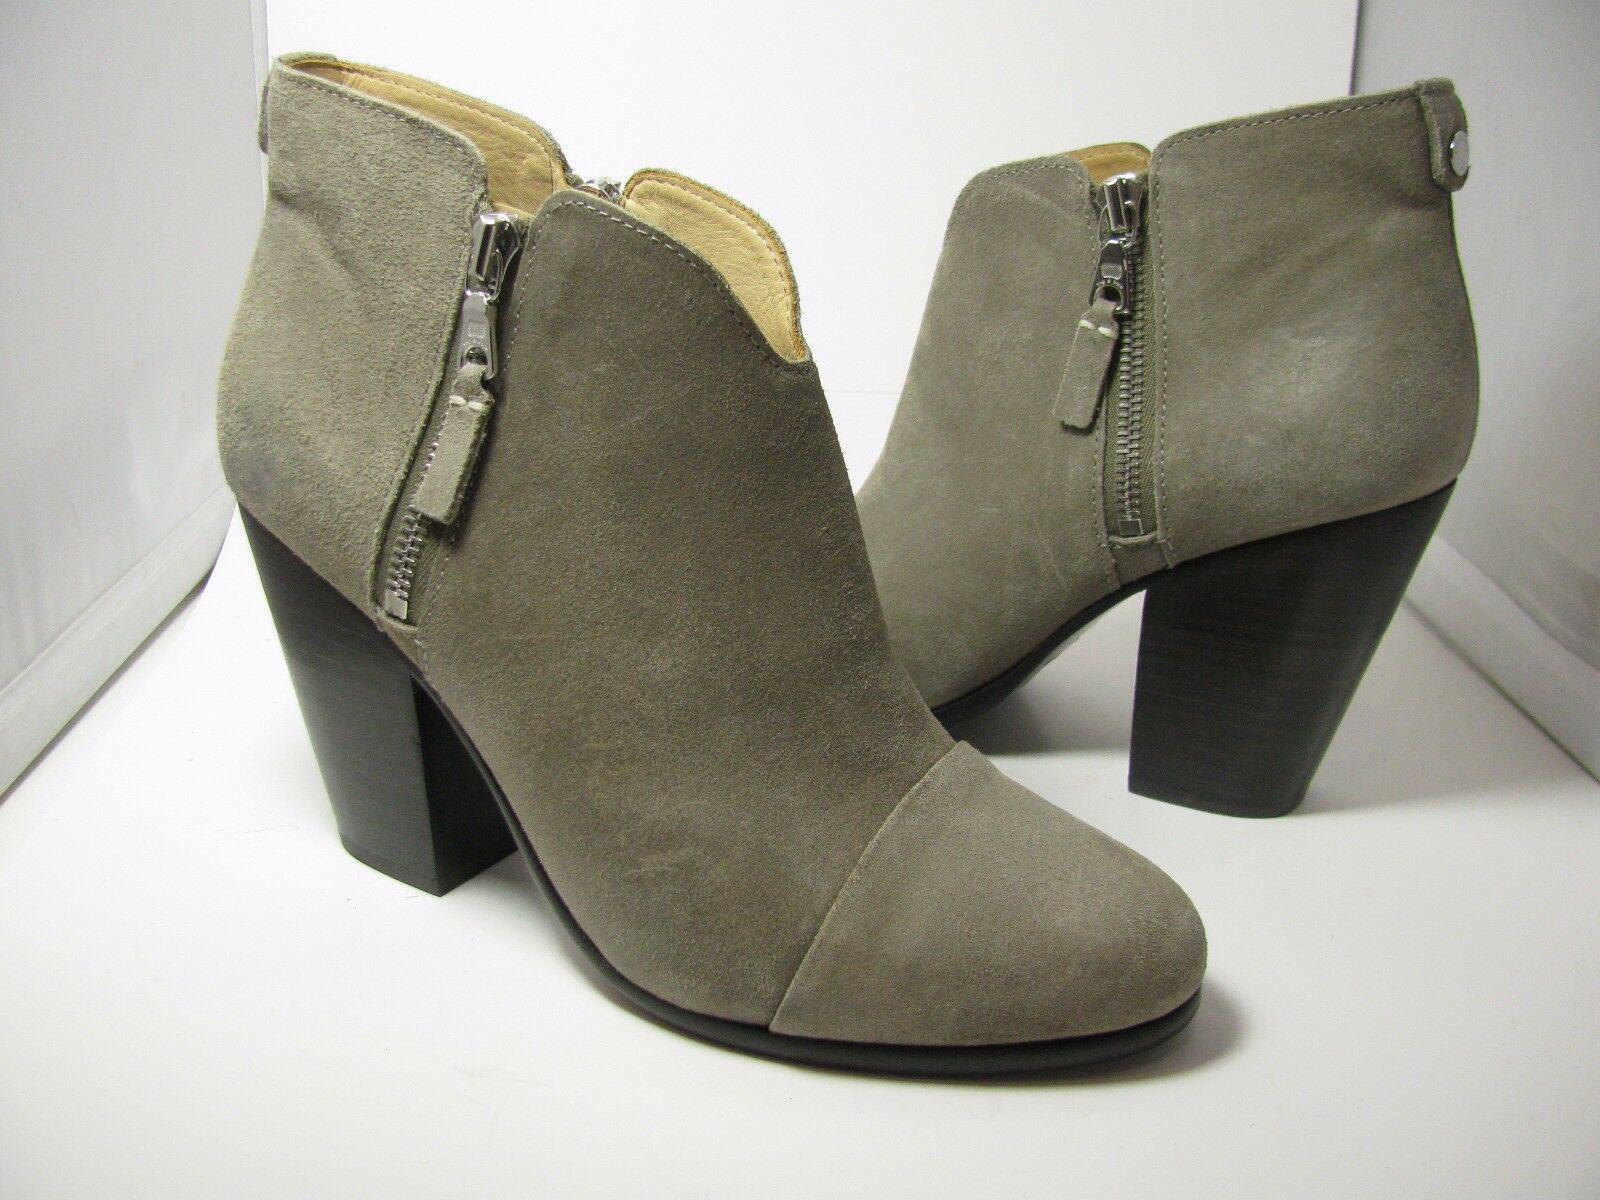 Sz 8.5  38.5 New RAG & BONE Ankle BOOTS BOOTS BOOTS Taupe booties MARGOT Stone Suede heel 9b59e8